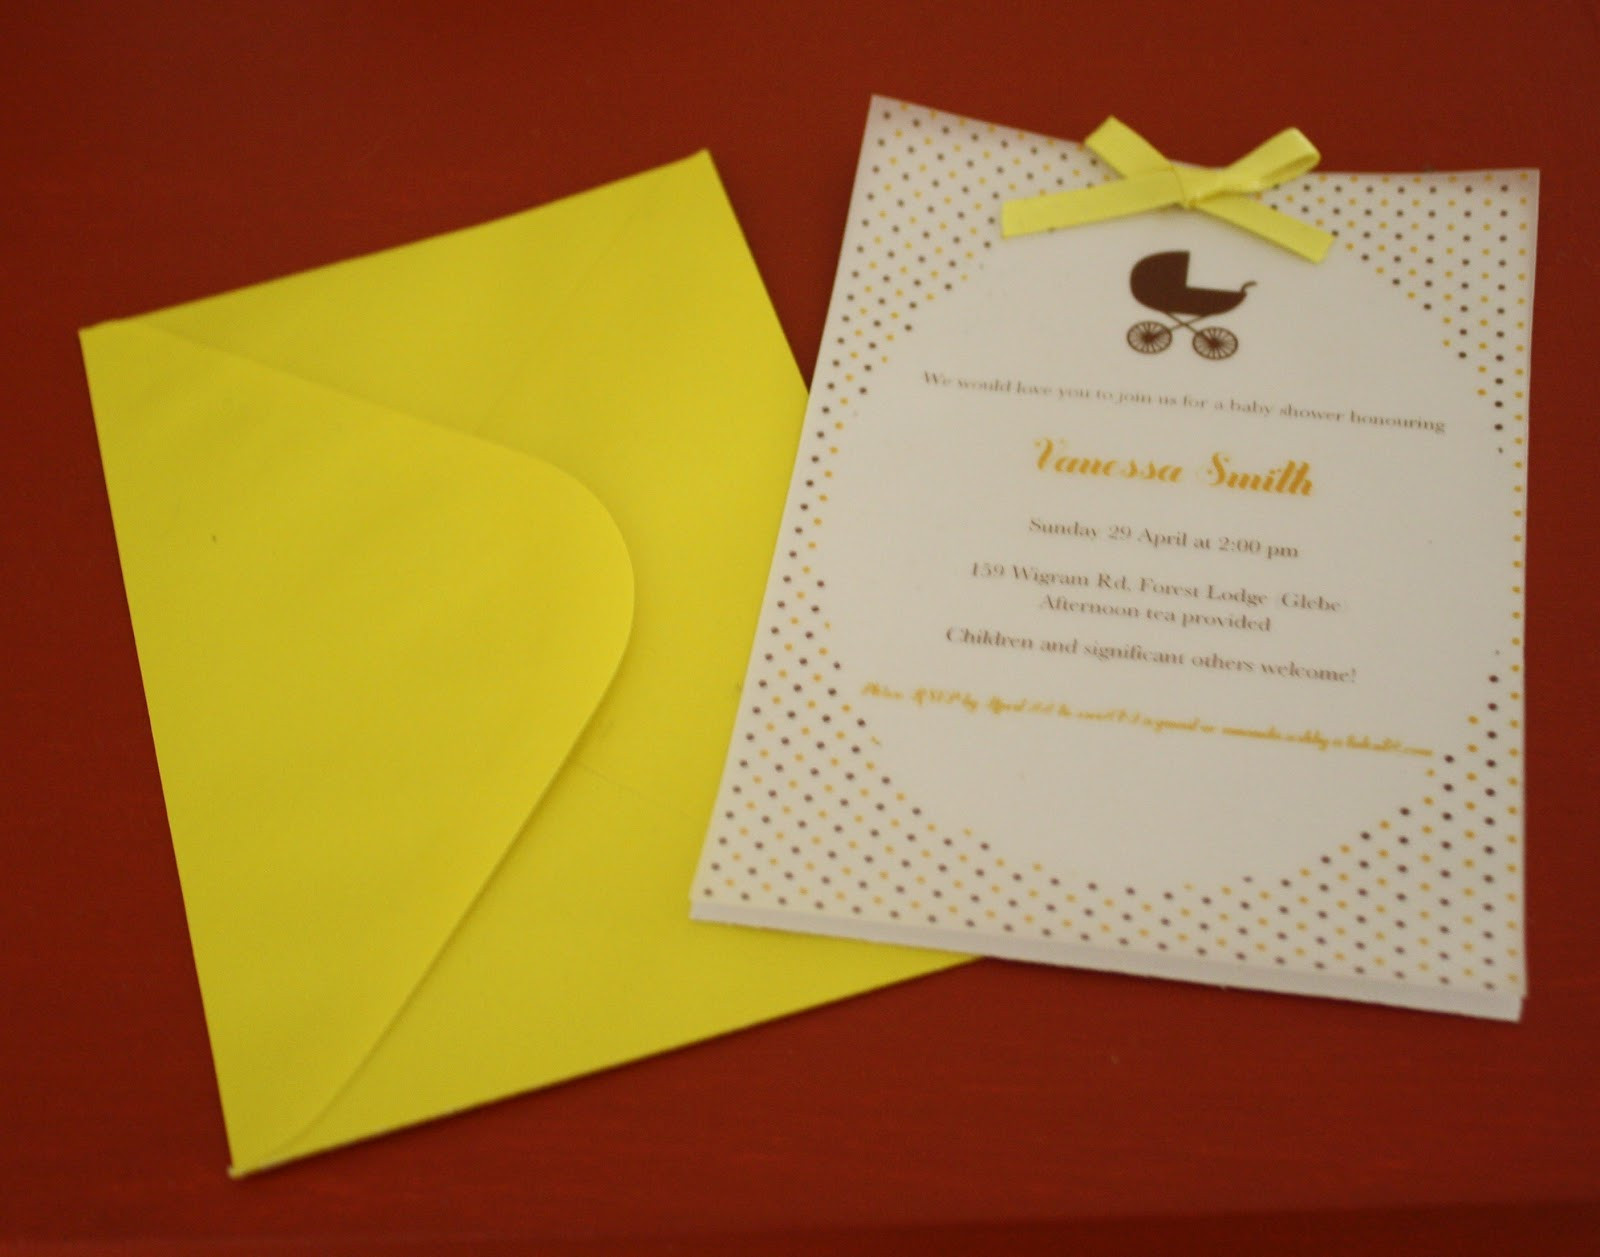 Best ideas about Baby Shower Invitations DIY . Save or Pin hello zogi Cute DIY baby shower invitations Now.